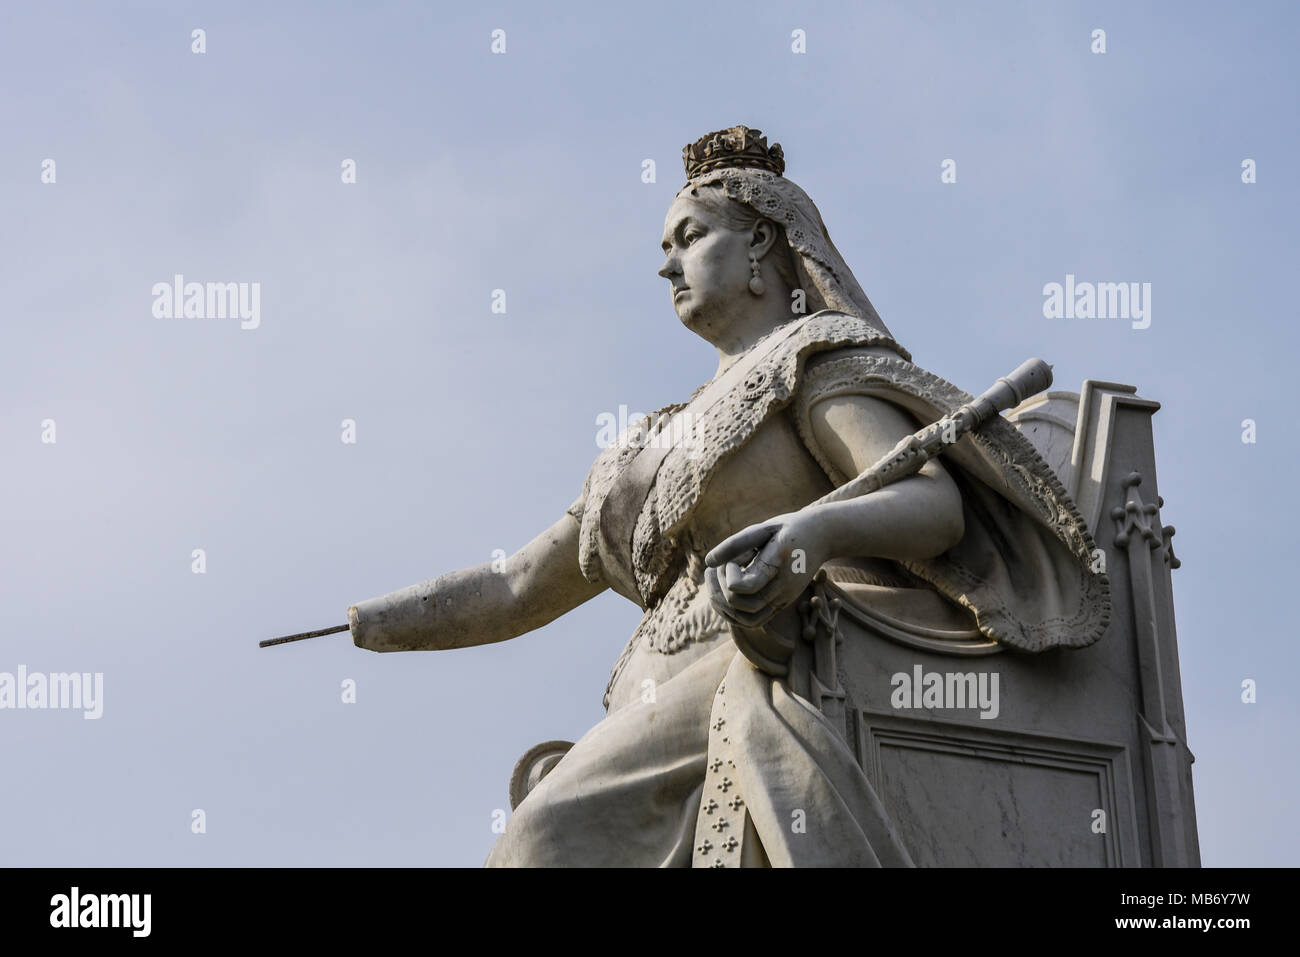 queen-victoria-statue-southend-on-sea-essex-missing-a-hand-due-to-vandals-erected-to-celebrate-her-diamond-jubilee-vandalised-space-for-copy-MB6Y7W.jpg